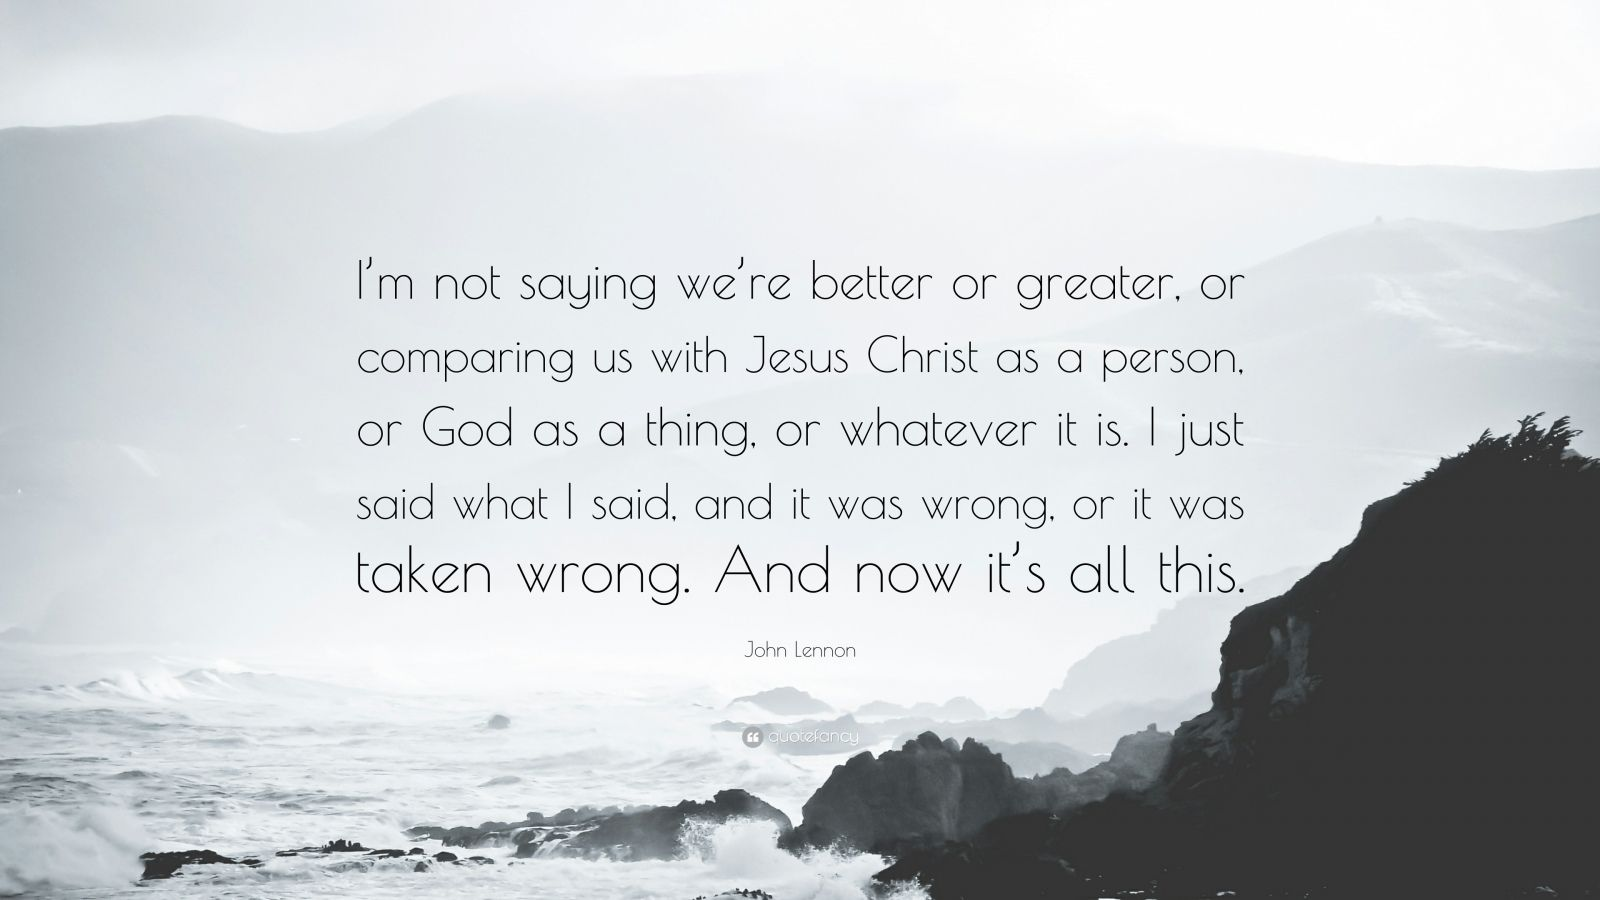 """John Lennon Quote: """"I'm not saying we're better or greater, or comparing us with Jesus Christ as a person, or God as a thing, or whatever it is. I just said what I said, and it was wrong, or it was taken wrong. And now it's all this."""""""